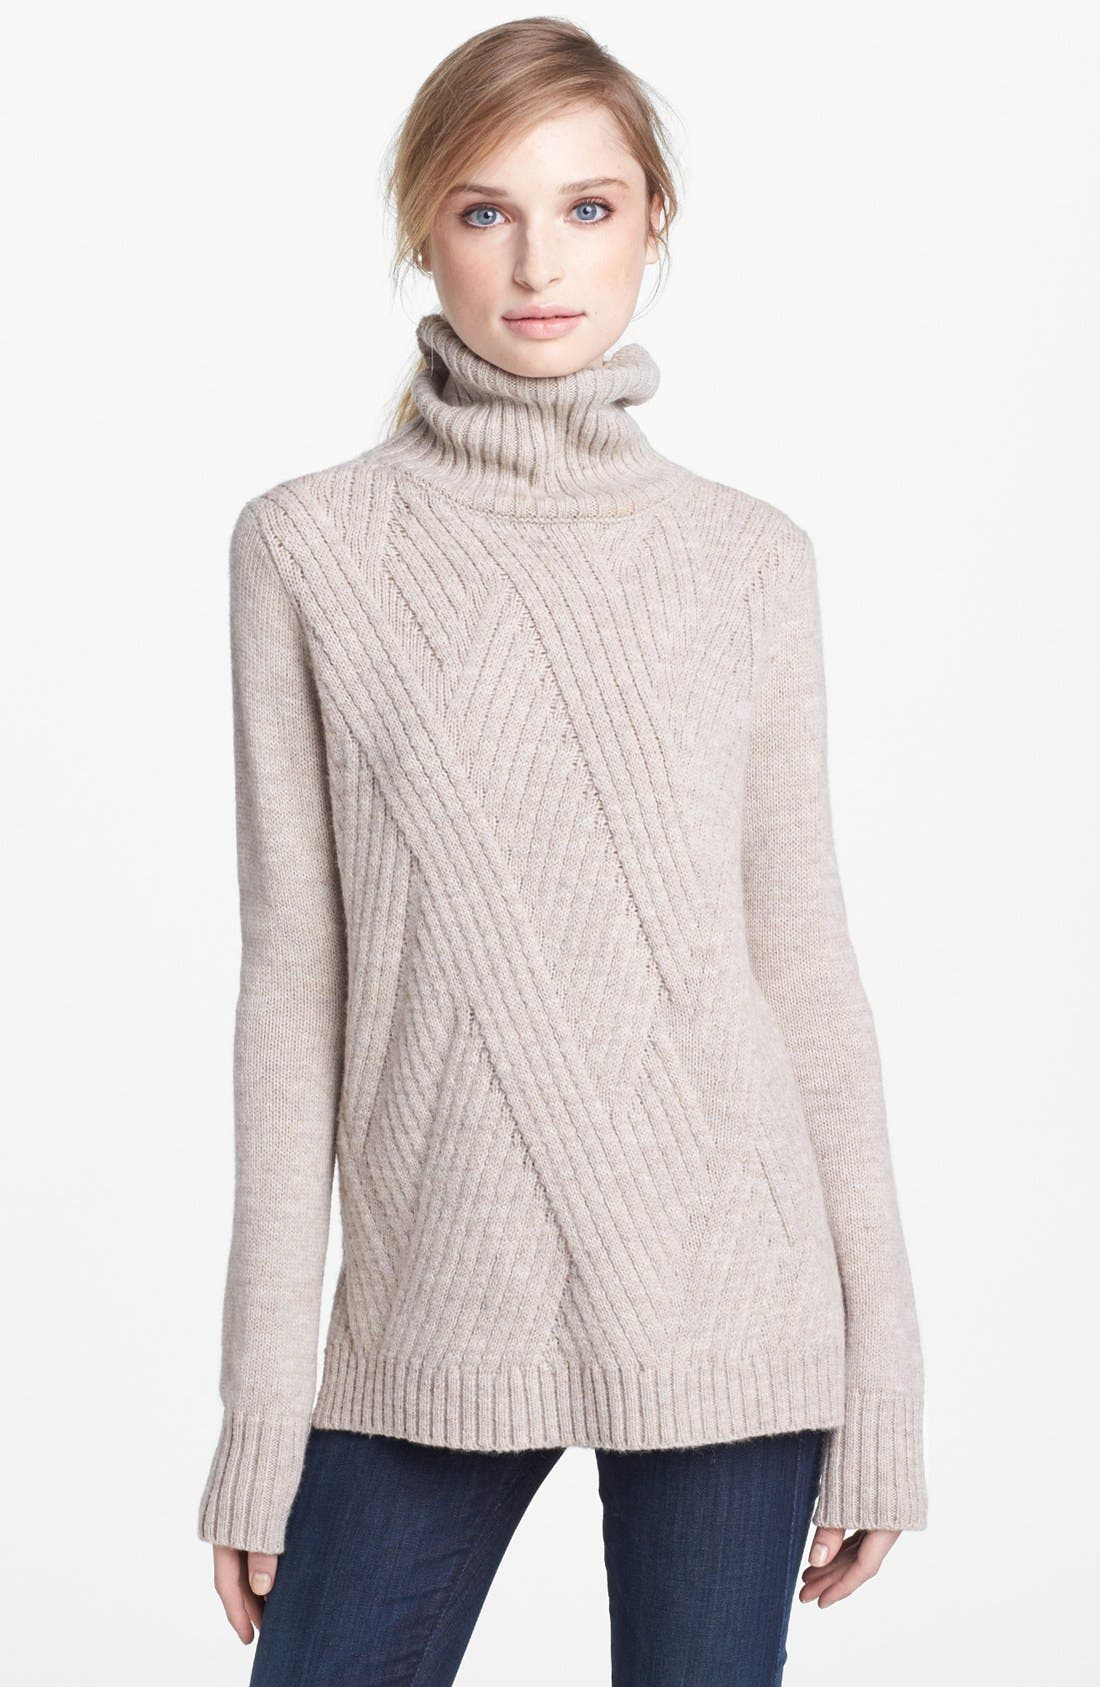 Main Image - Vince 'Travelling' Ribbed Turtleneck Sweater